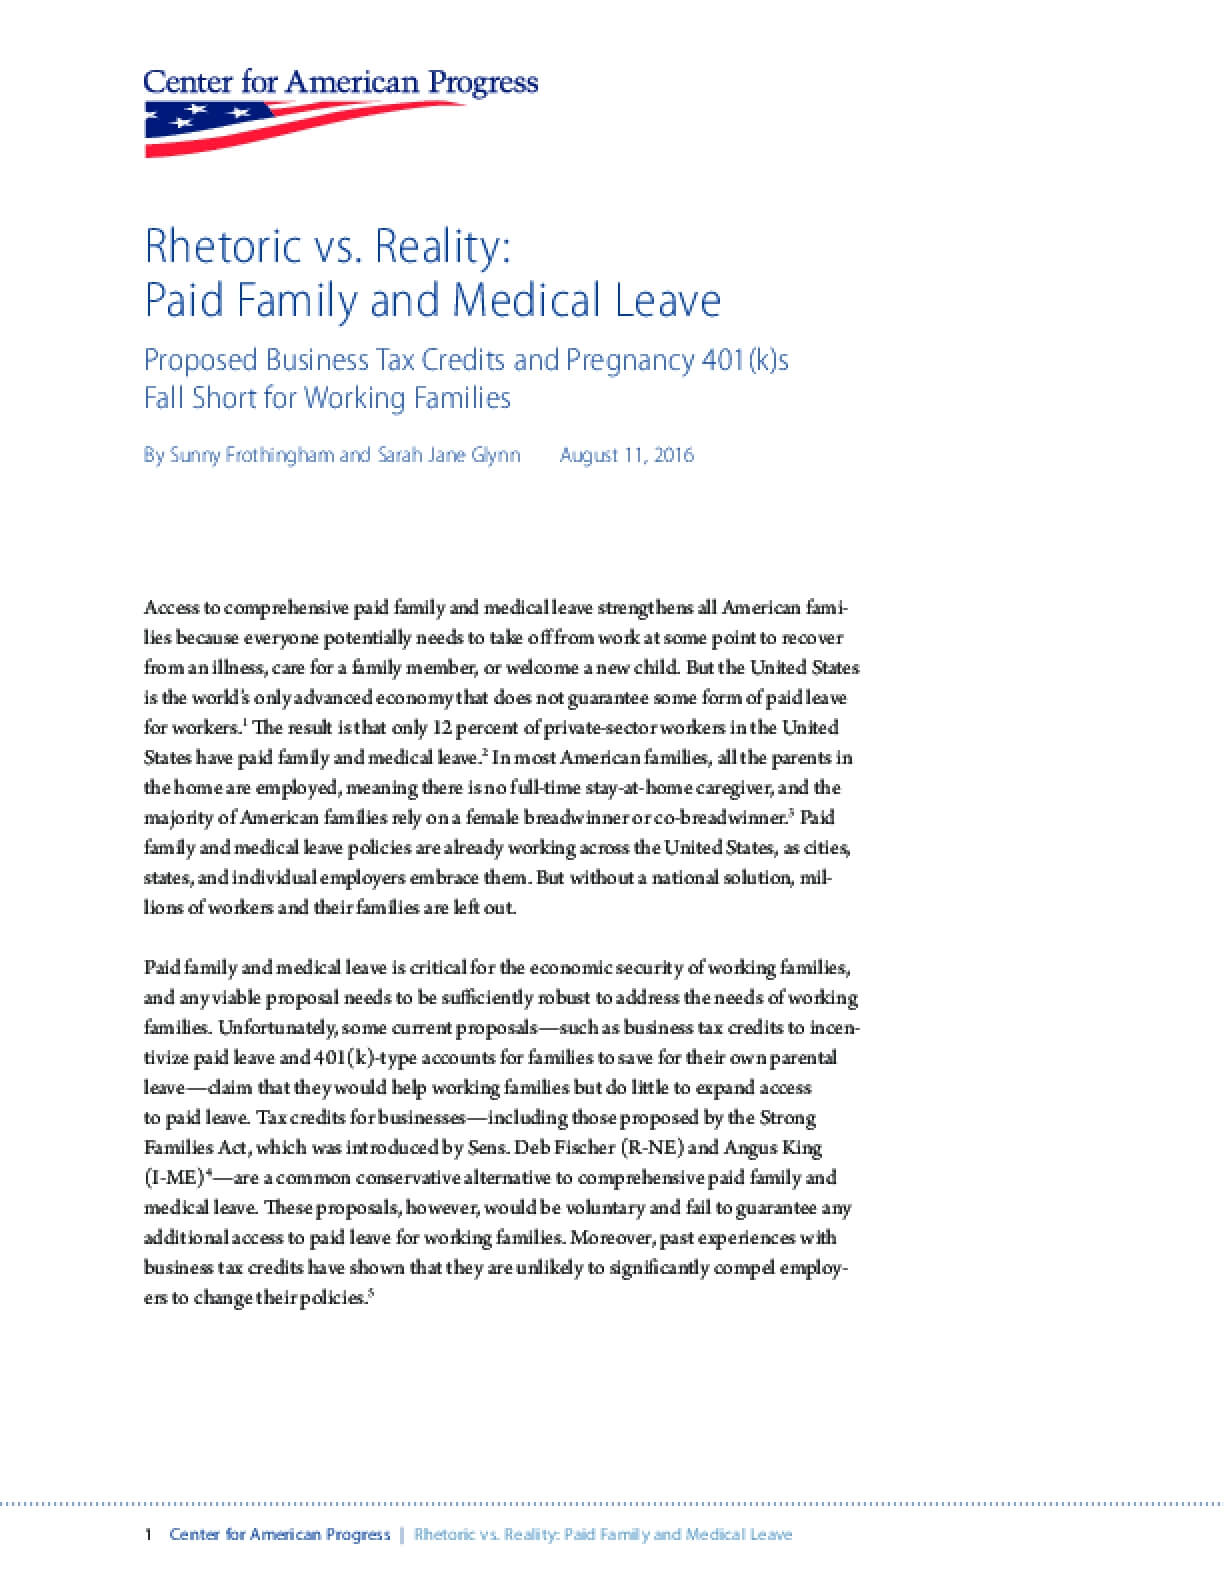 Rhetoric vs. Reality: Paid Family and Medical Leave - Proposed Business Tax Credits and Pregnancy 401(K)s Fall Short for Working Families